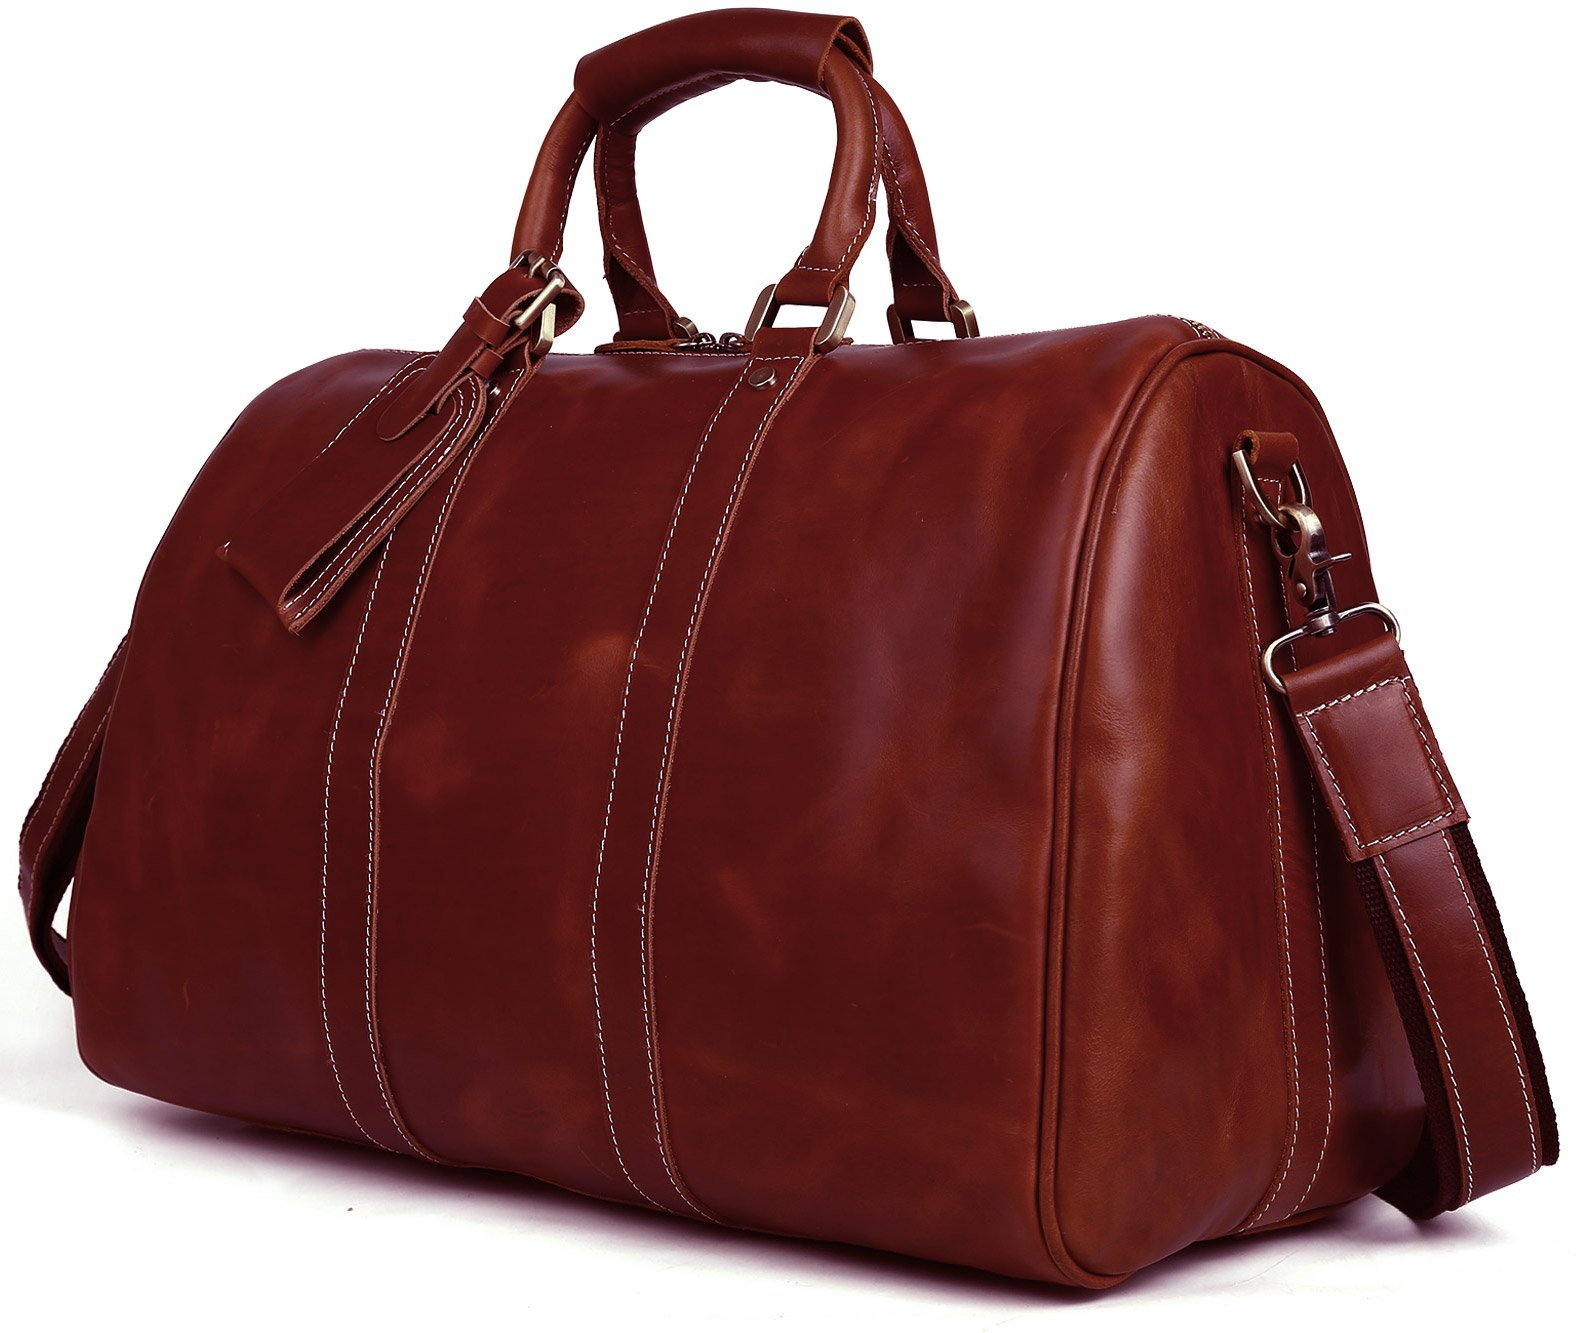 BAIGIO Men Leather Weekend/Overnight Travel Duffle Bag Carry On Cabin Duffel Luggage (Red Brown) by BAIGIO